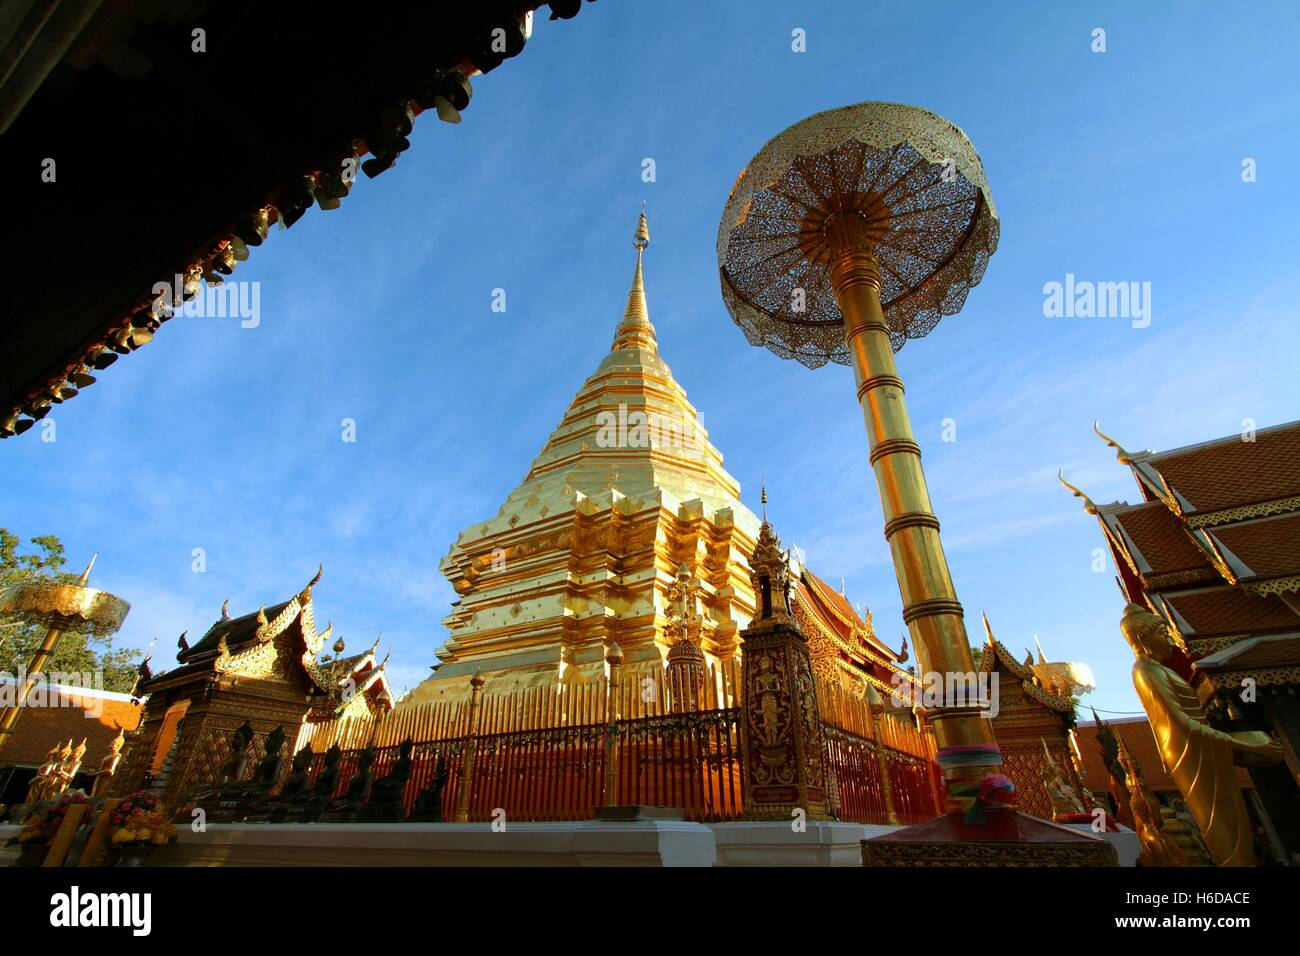 Chiang Mai, Thailand - Jan18, 2016: Wat Phra That Doi Suthep is tourist attraction and popular historical temple - Stock Image